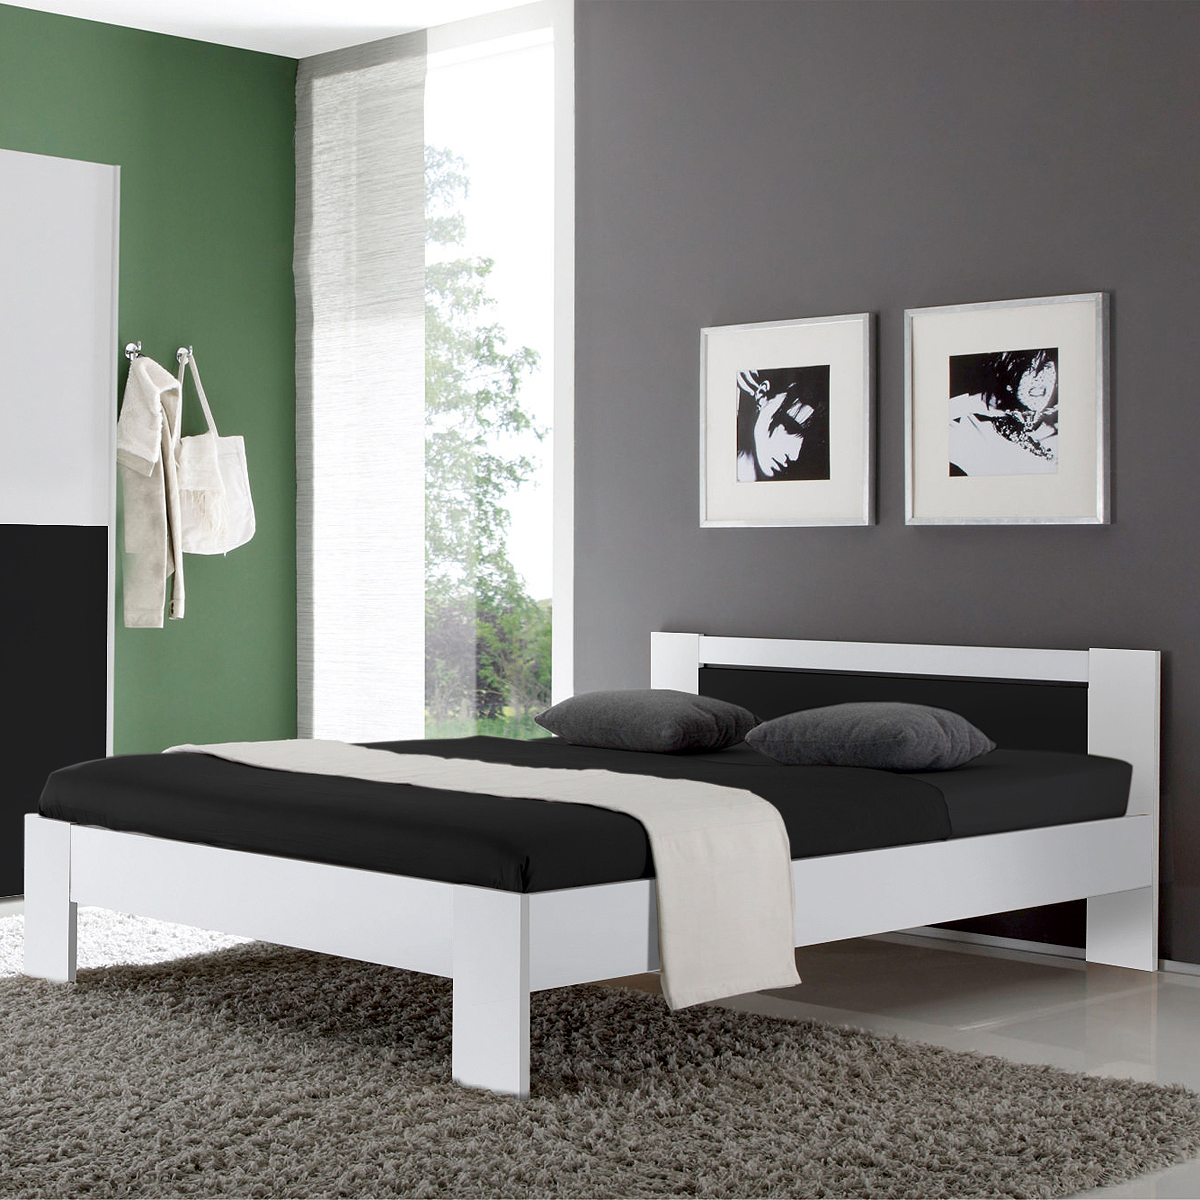 futonbett 140x200 mit matratze und lattenrost futonbett. Black Bedroom Furniture Sets. Home Design Ideas